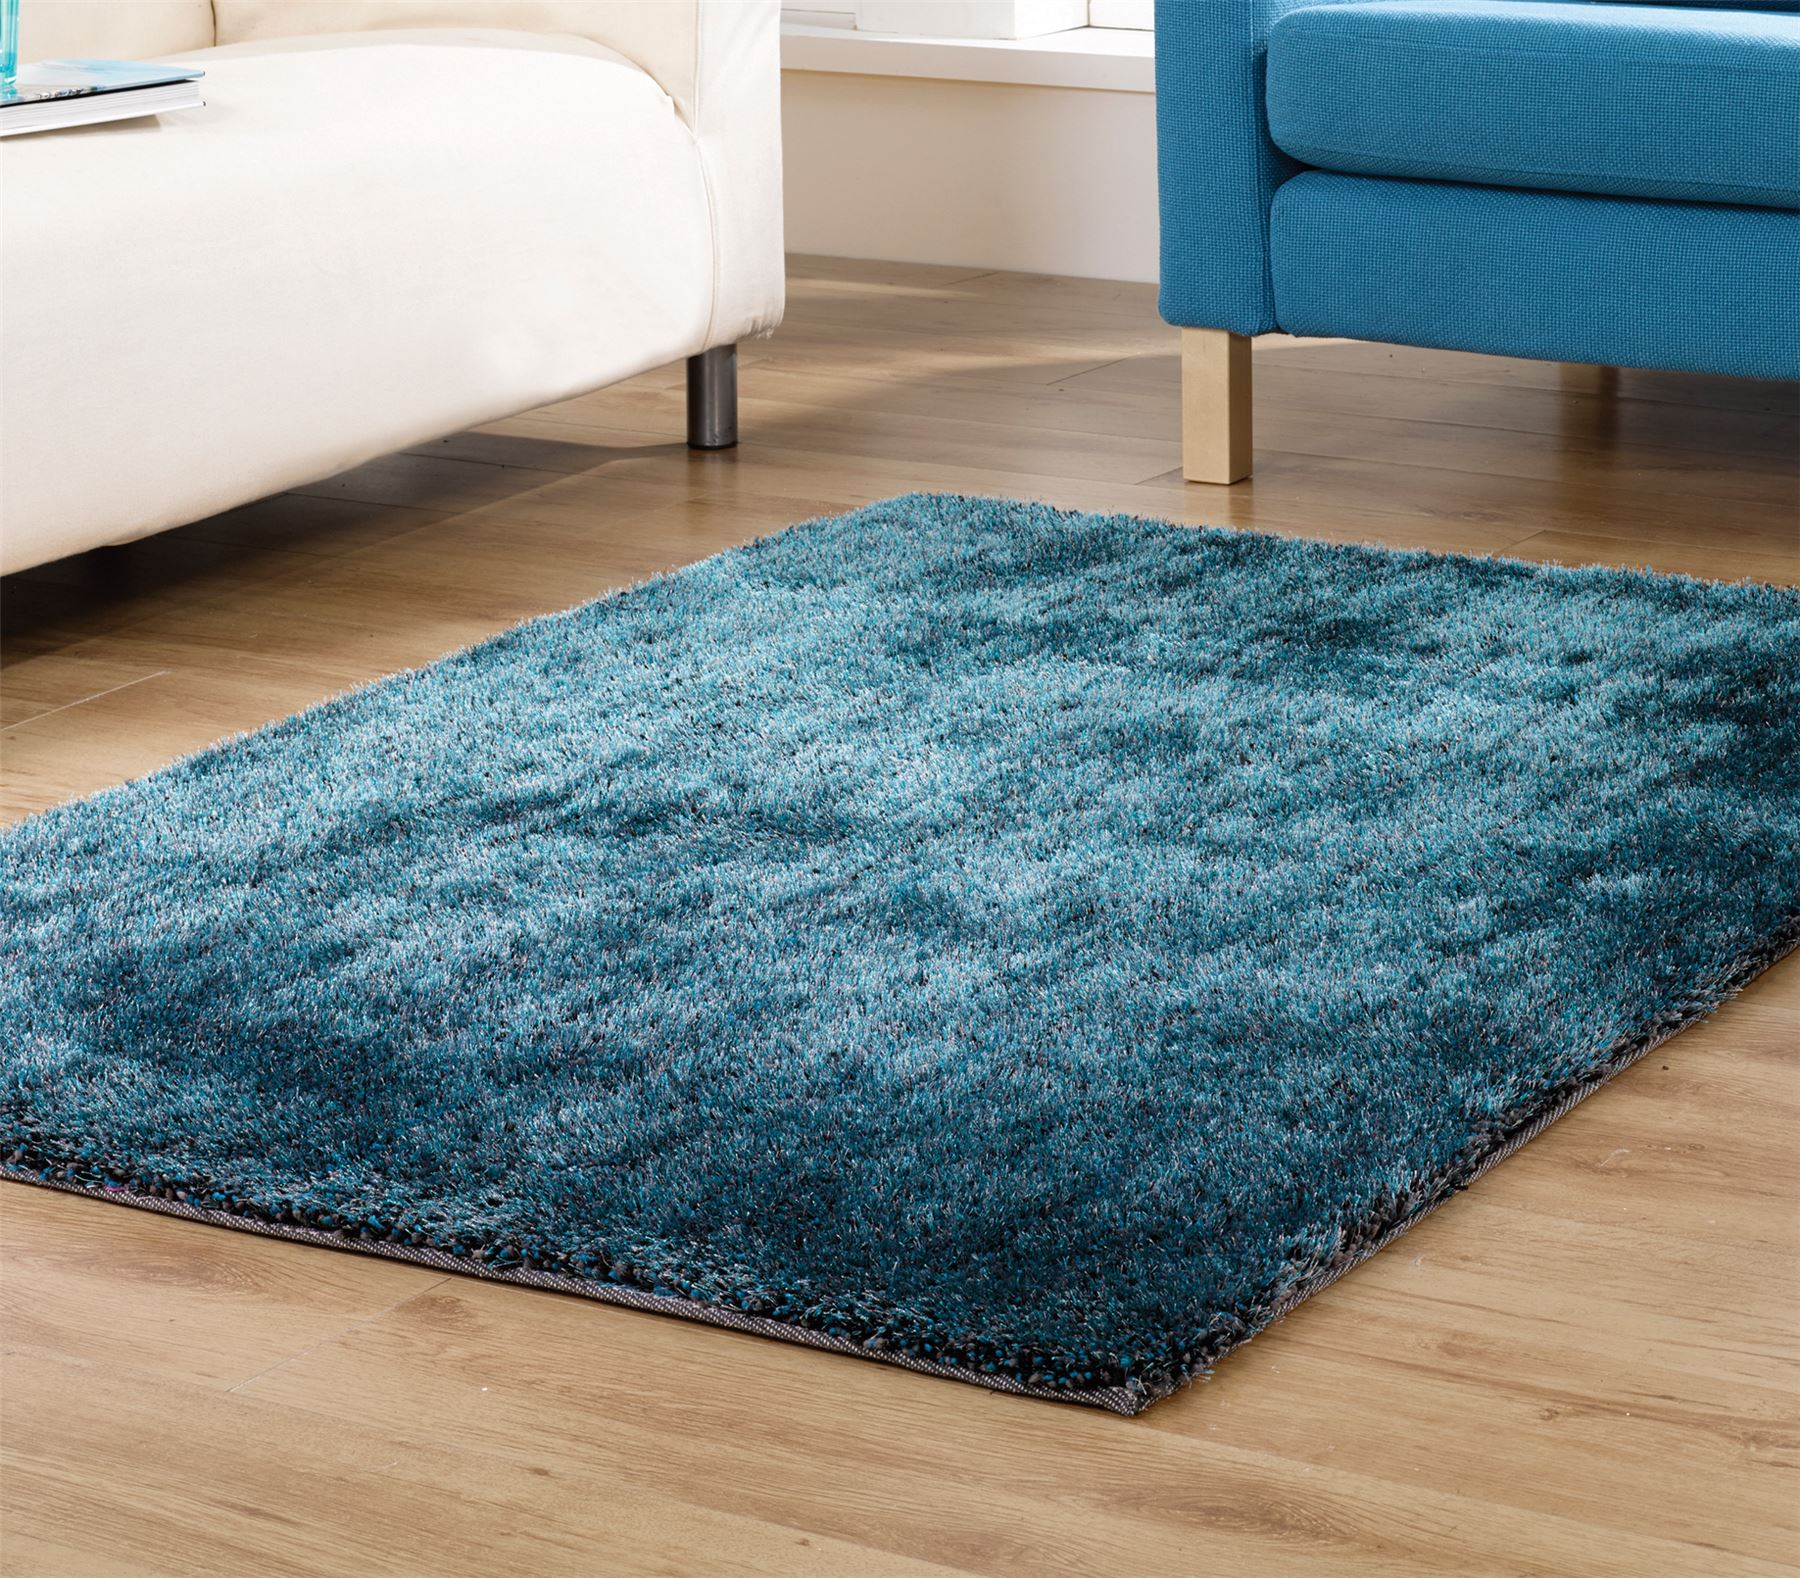 Green Teal Rug Area Rug Ideas